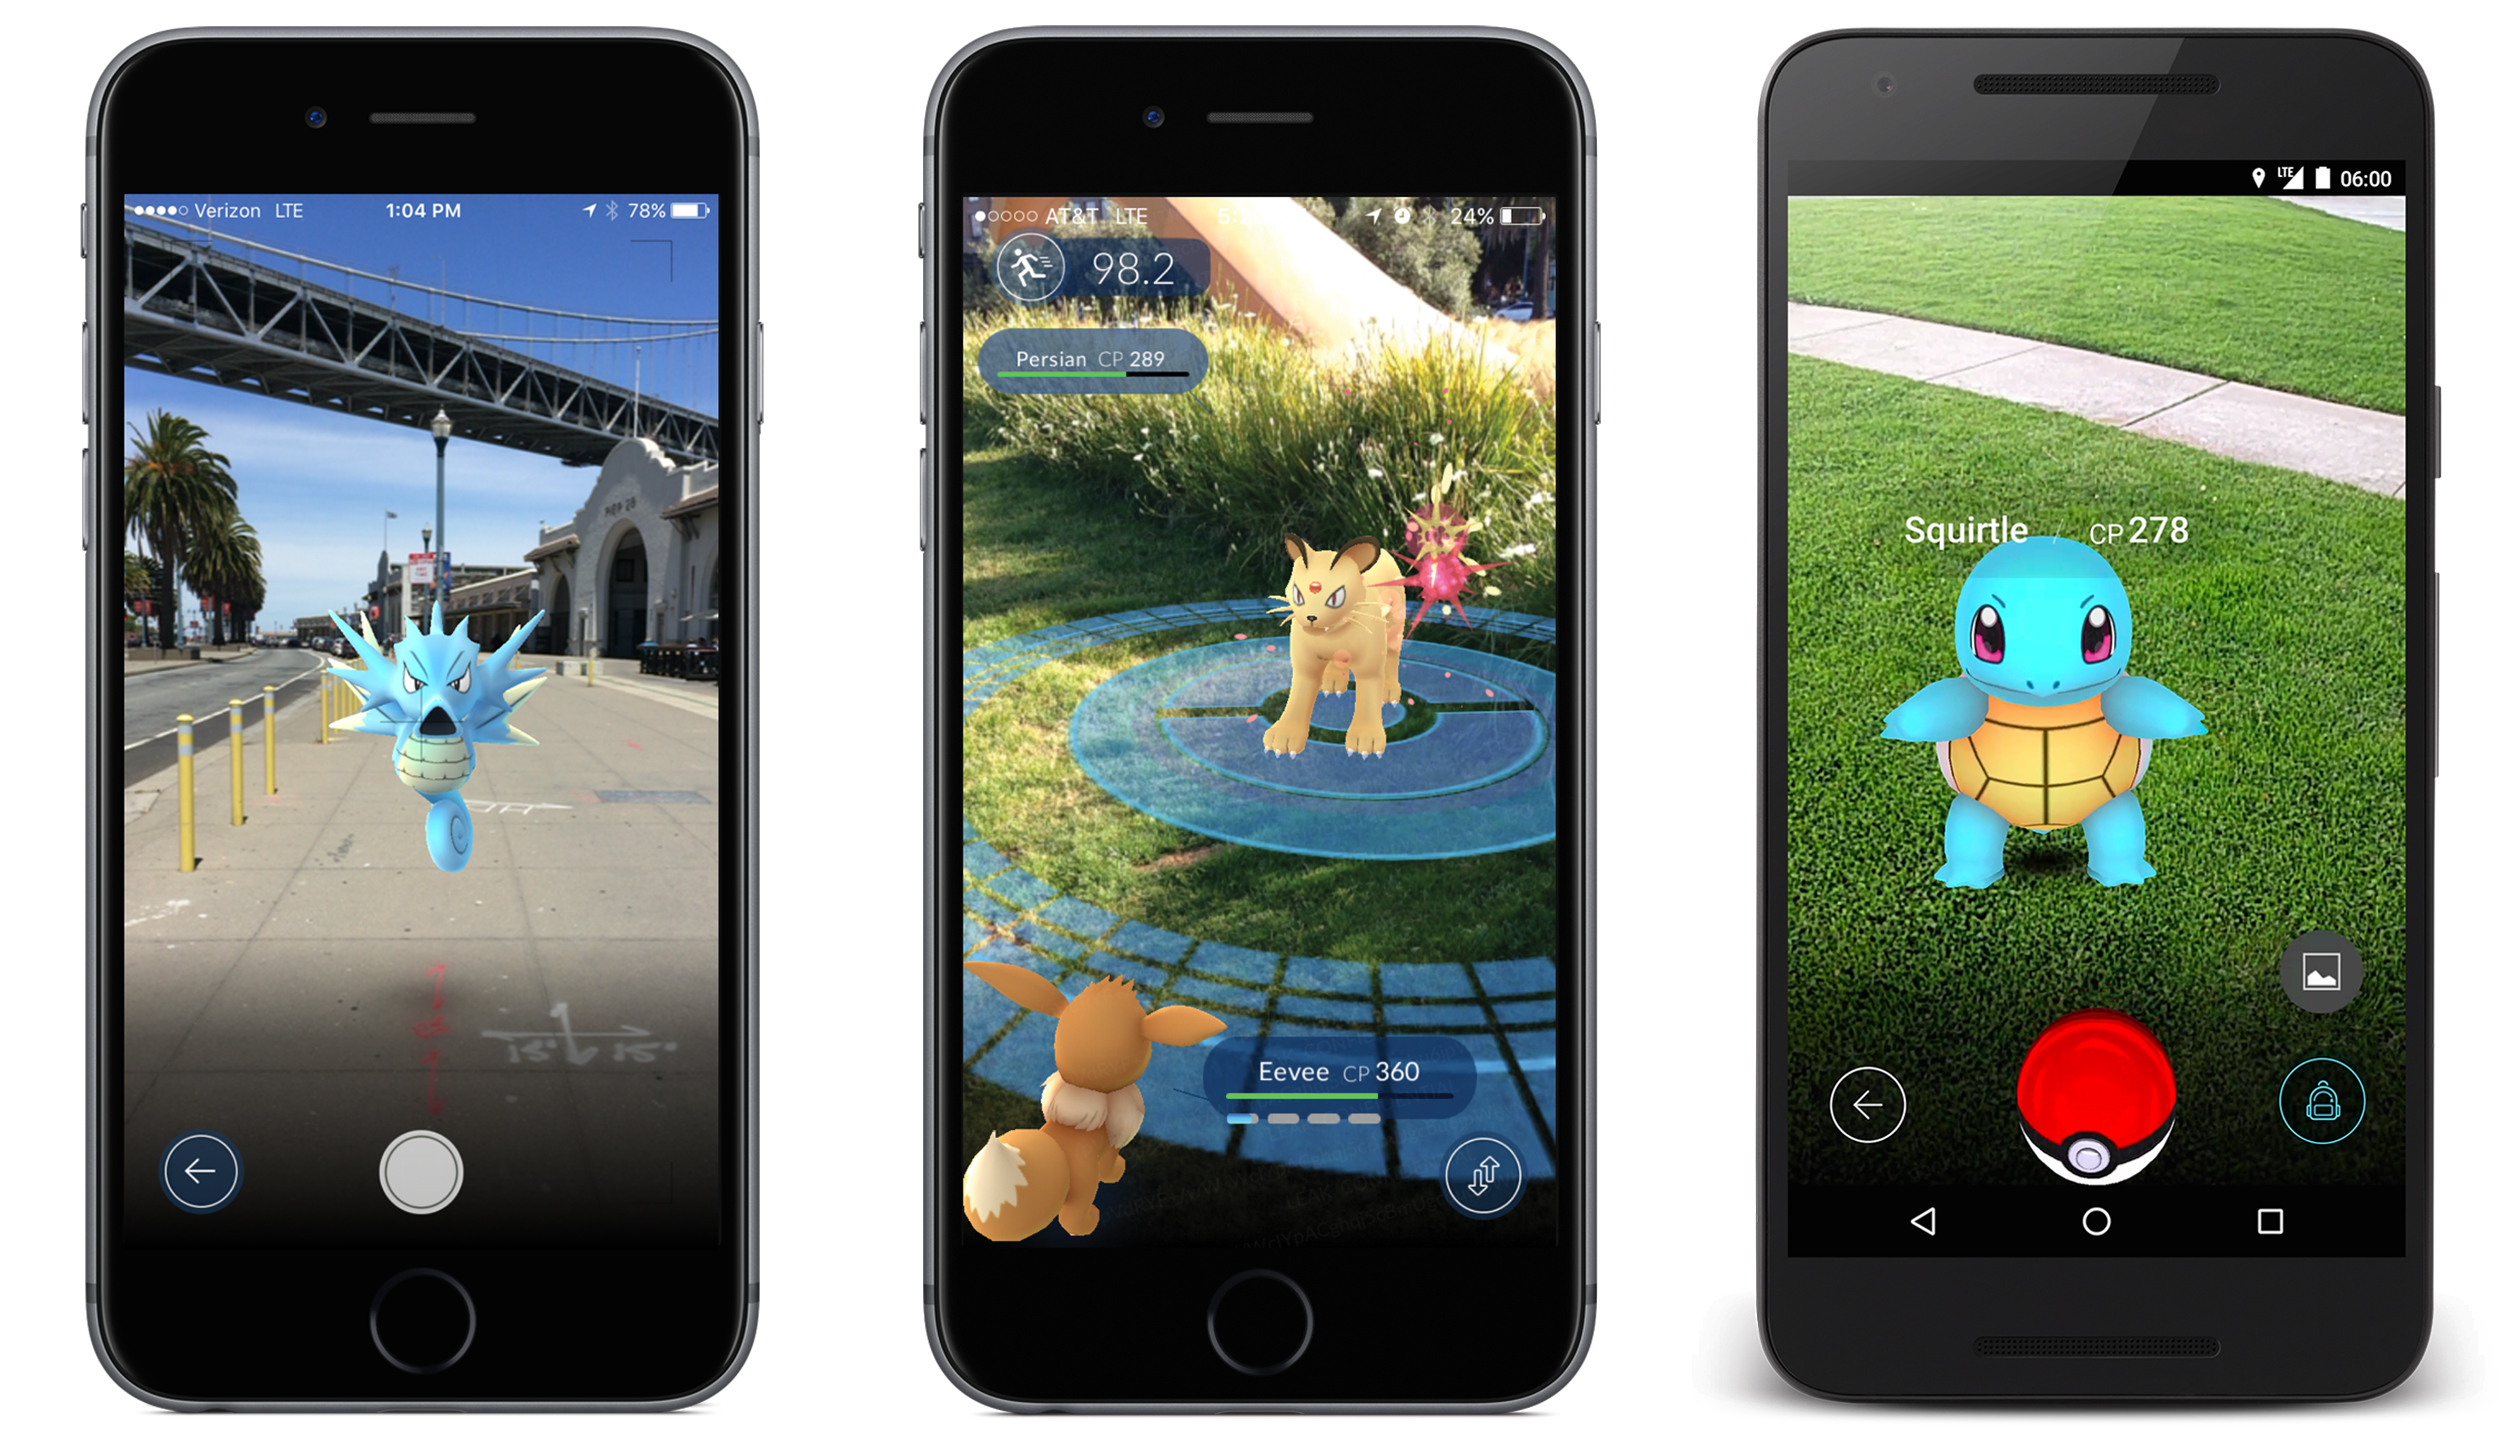 Pokemon Go screenshots.